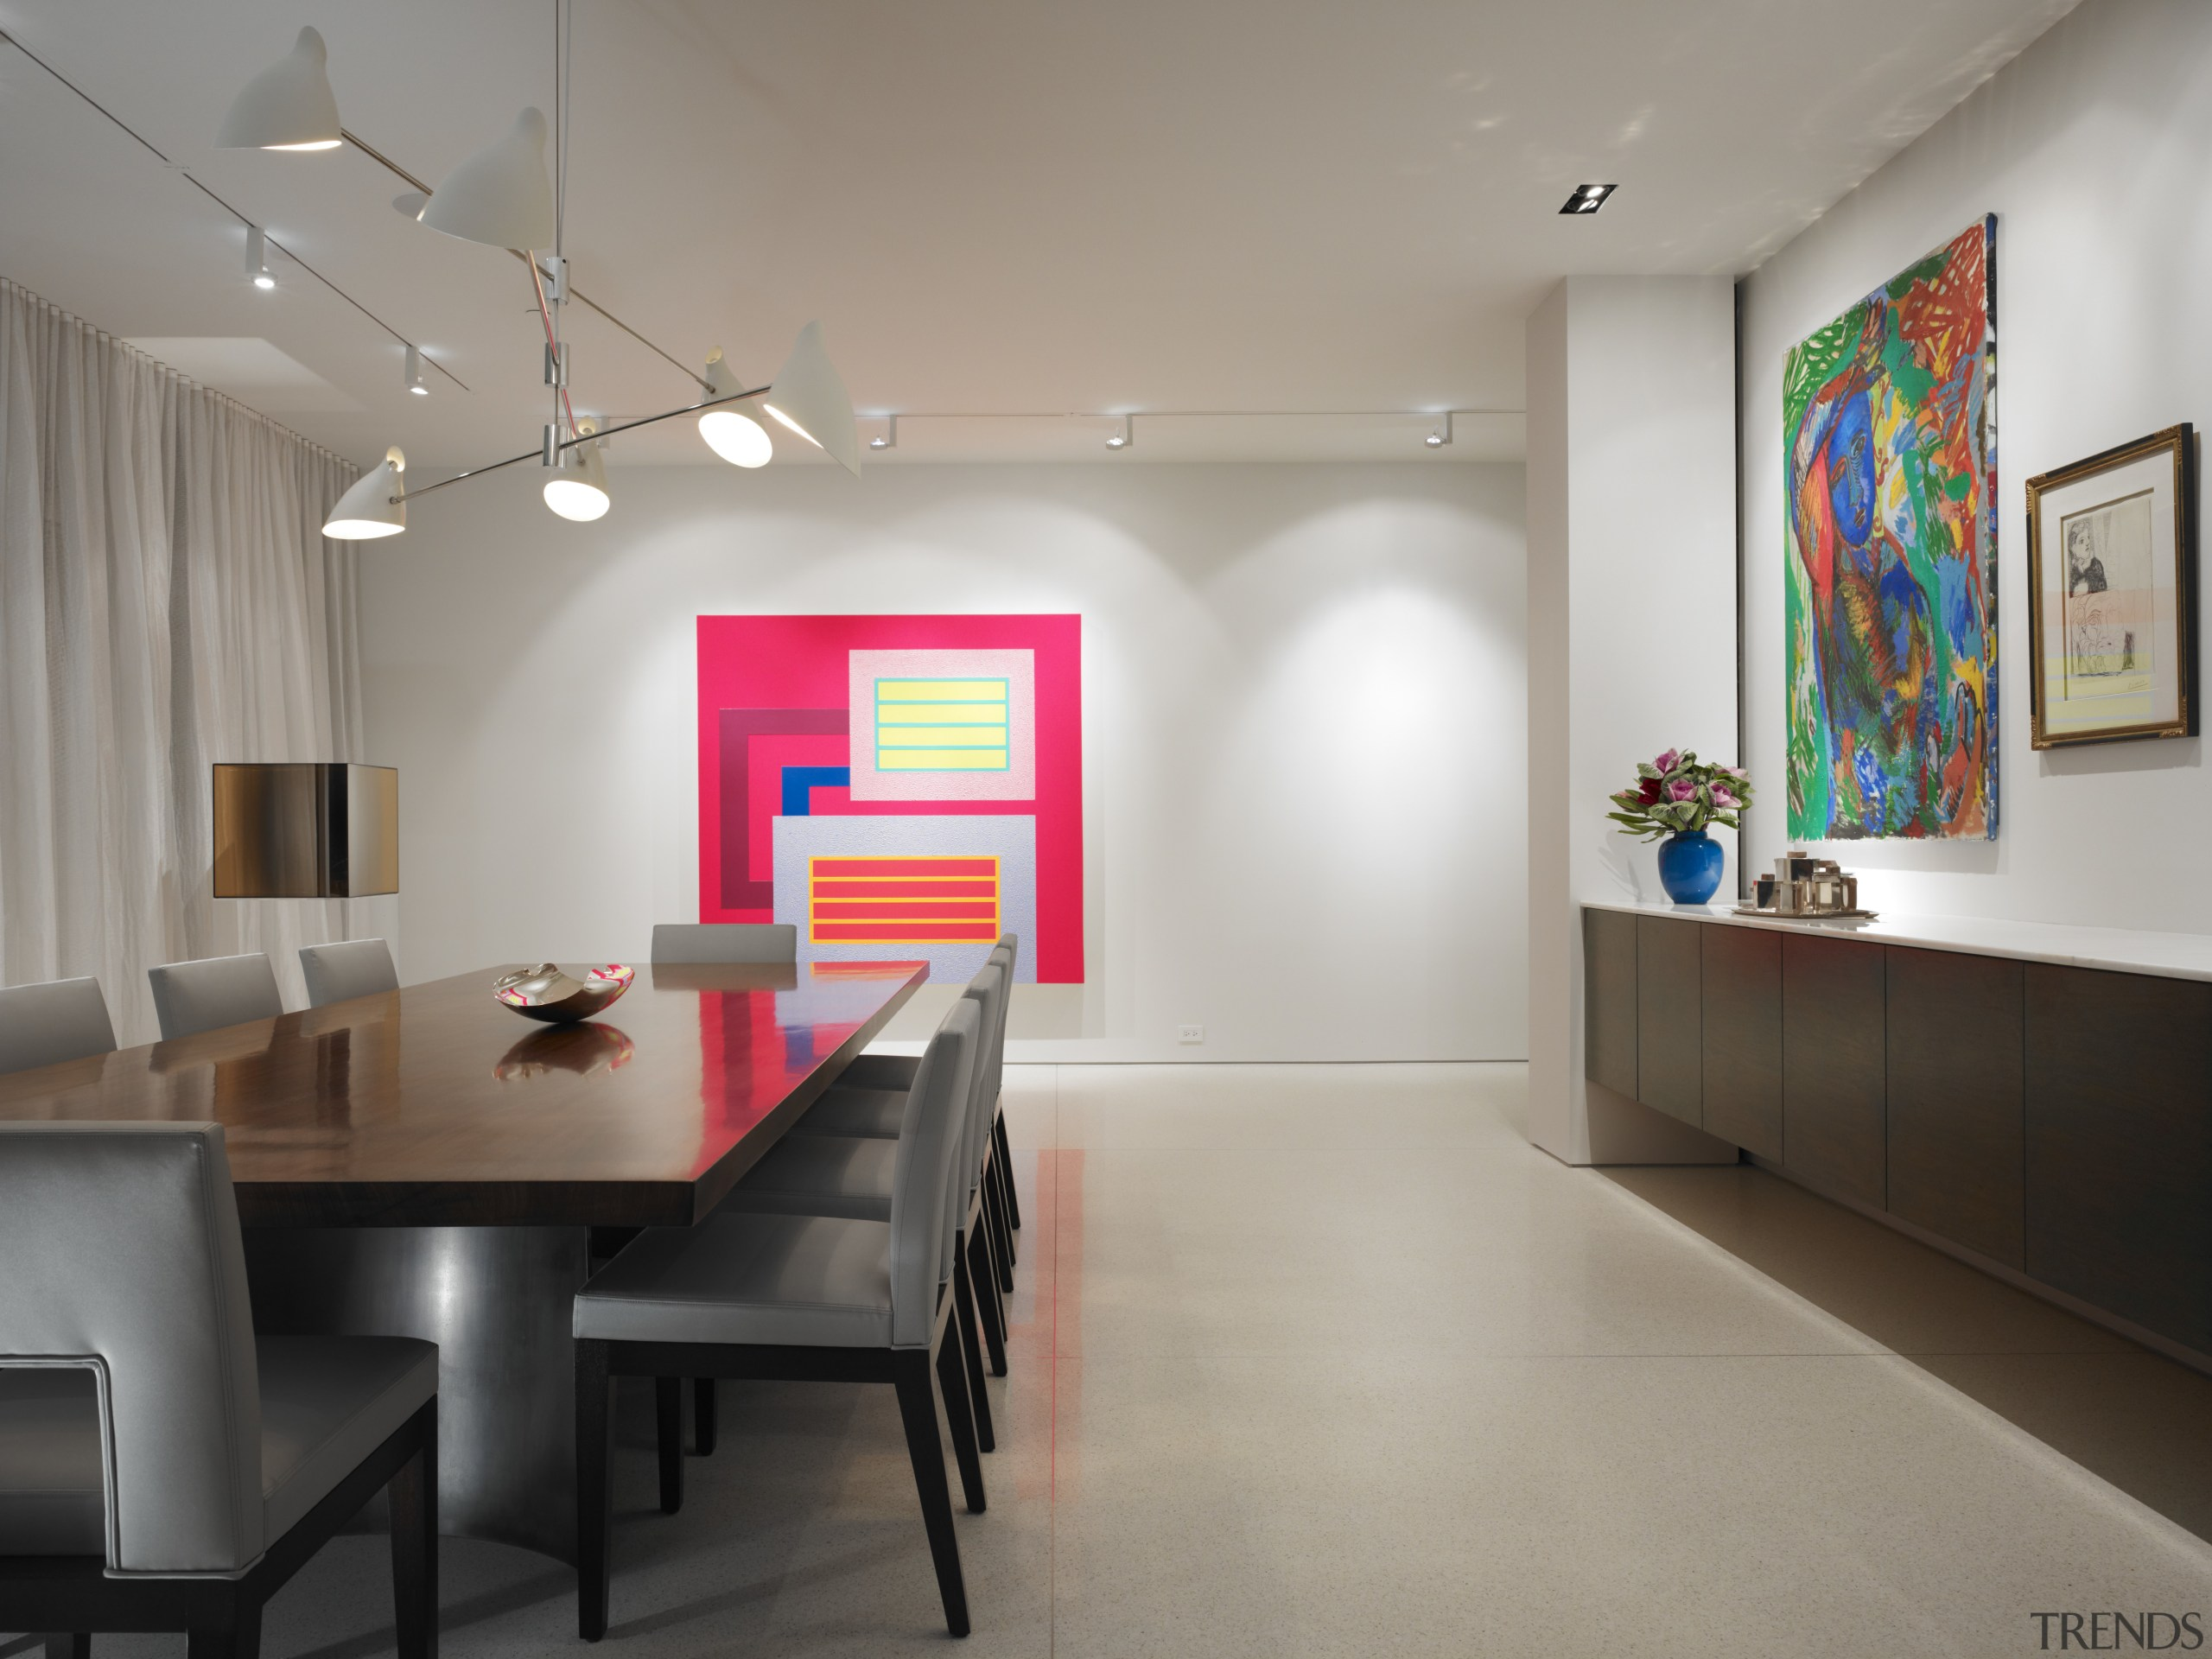 In this spacious dining area, the painting on architecture, ceiling, dining room, interior design, room, table, wall, gray